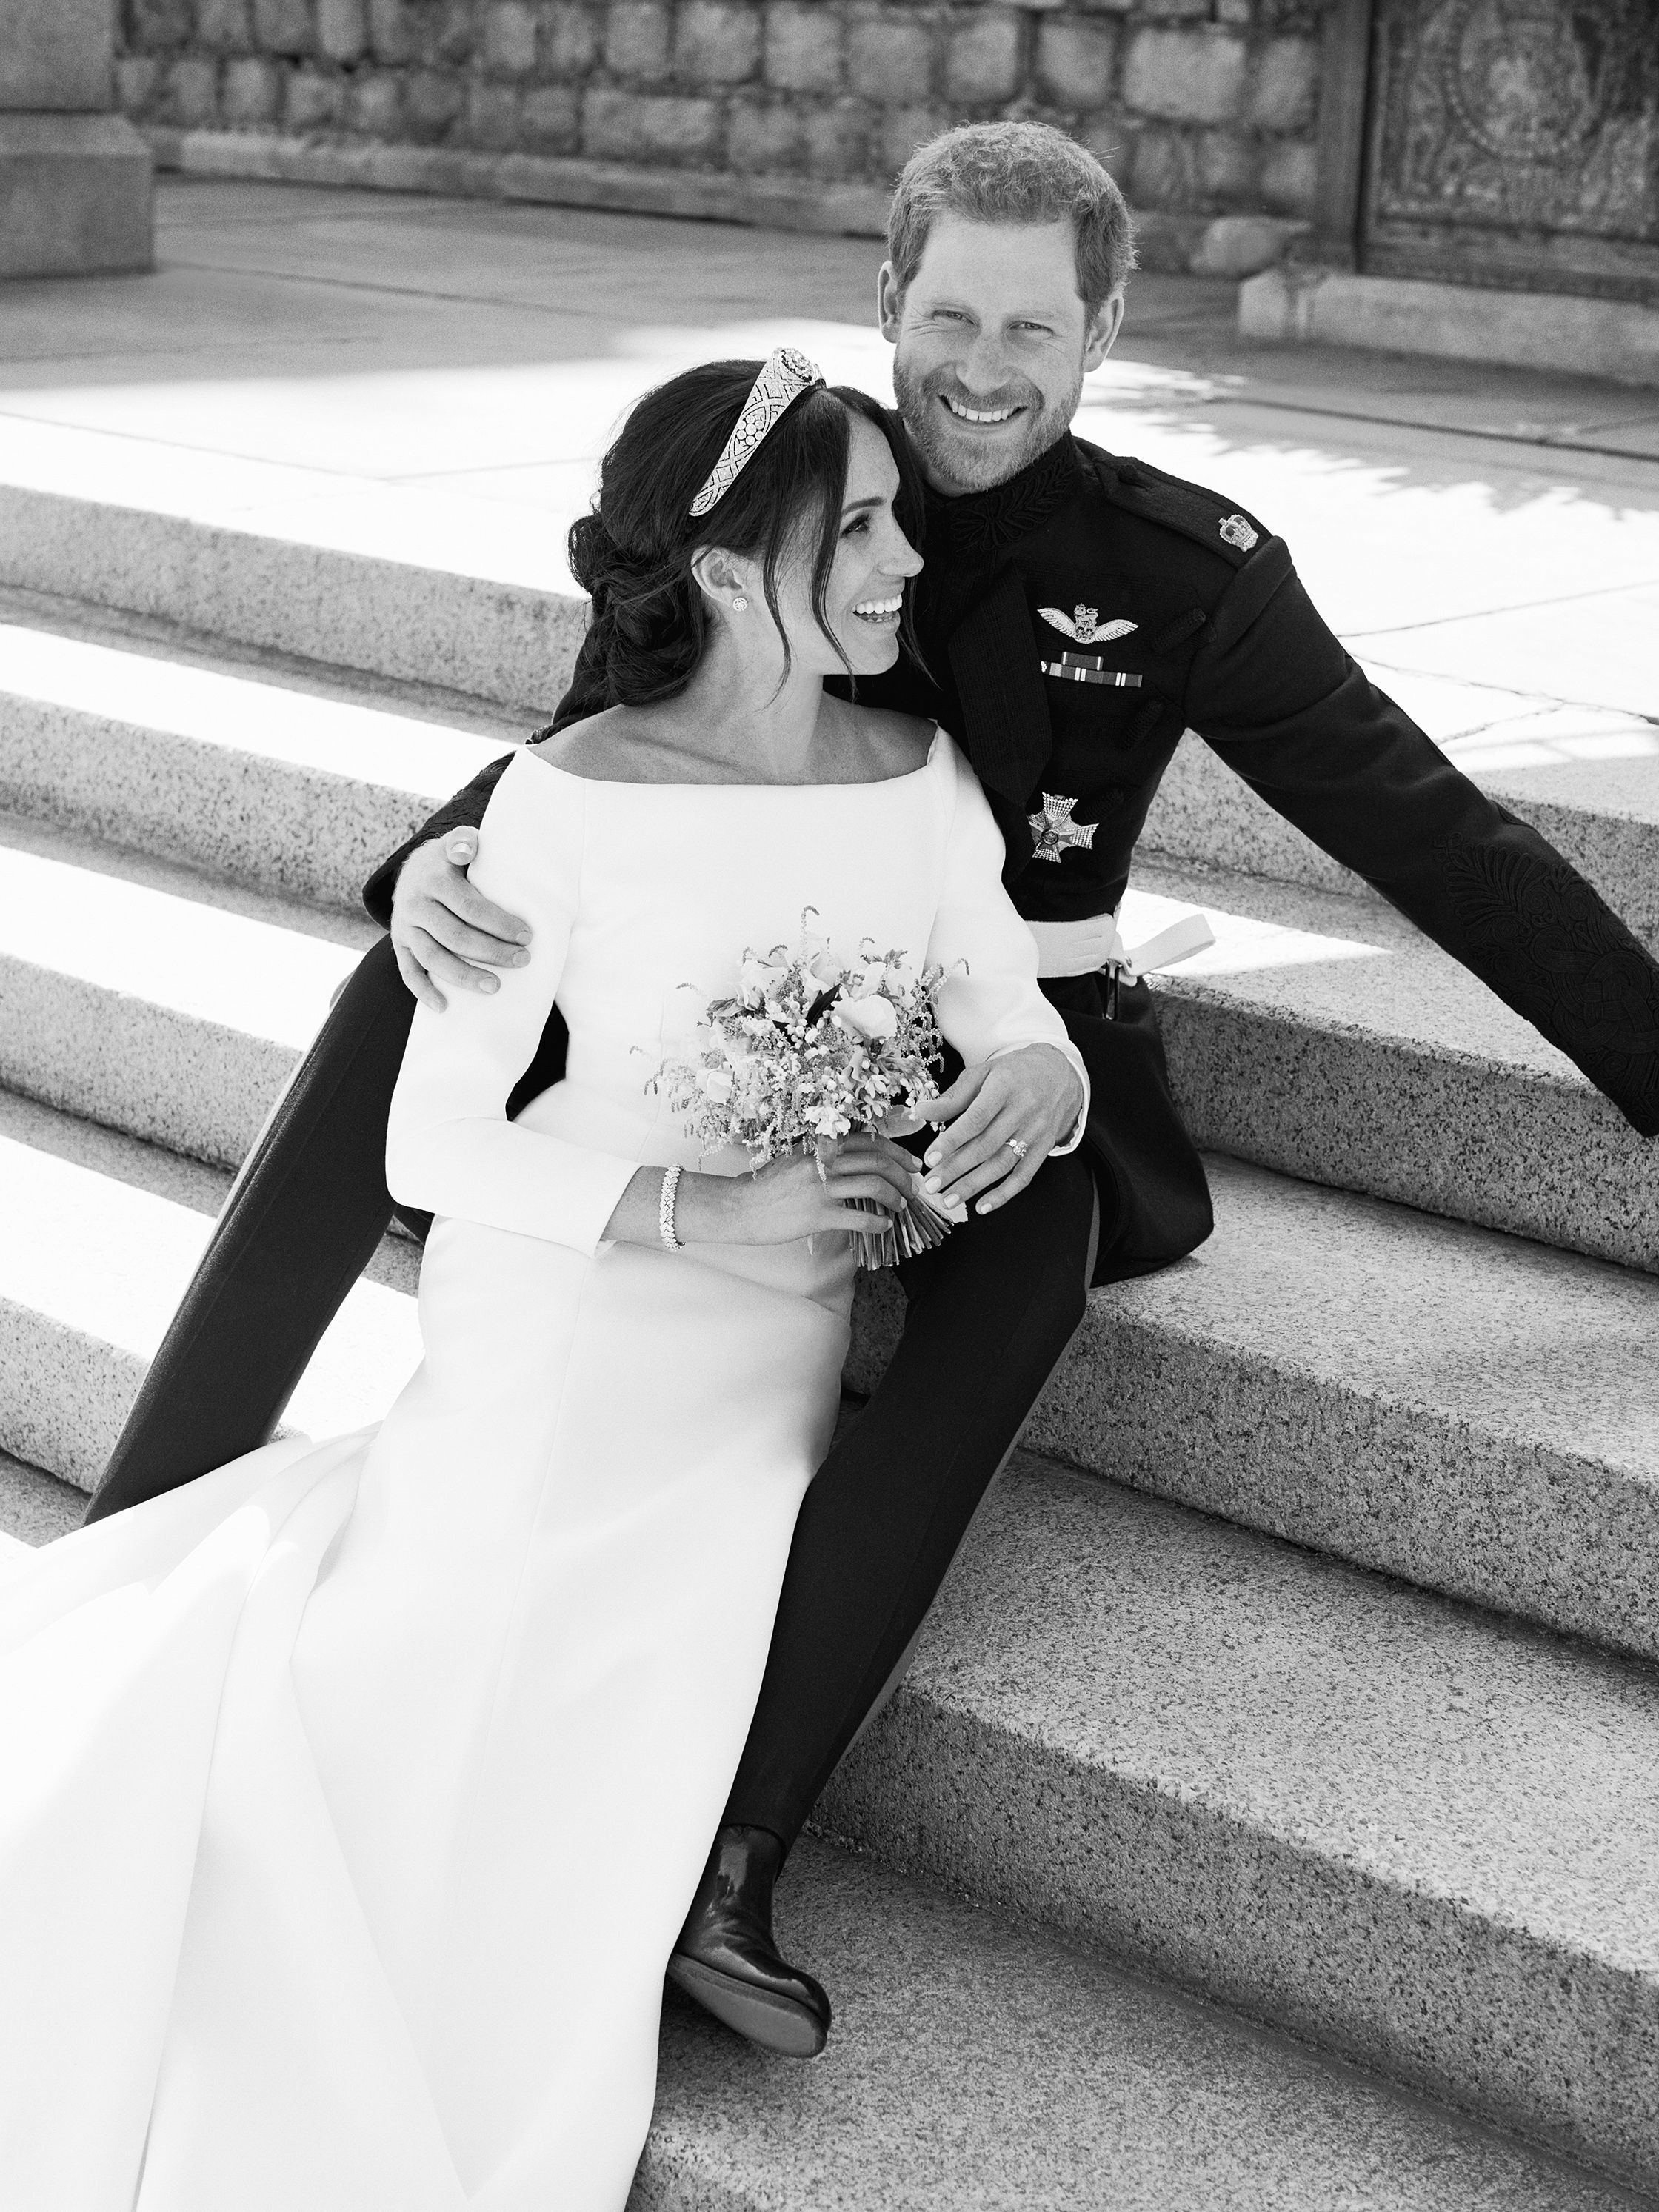 This photo released by Kensington Palace on Monday May 21, 2018, shows an official wedding photo of Britain's Prince Harry and Meghan Markle, on the East Terrace of Windsor Castle, Windsor, England, Saturday May 19, 2018. (Alexi Lubomirski/Kensington Palace via AP)